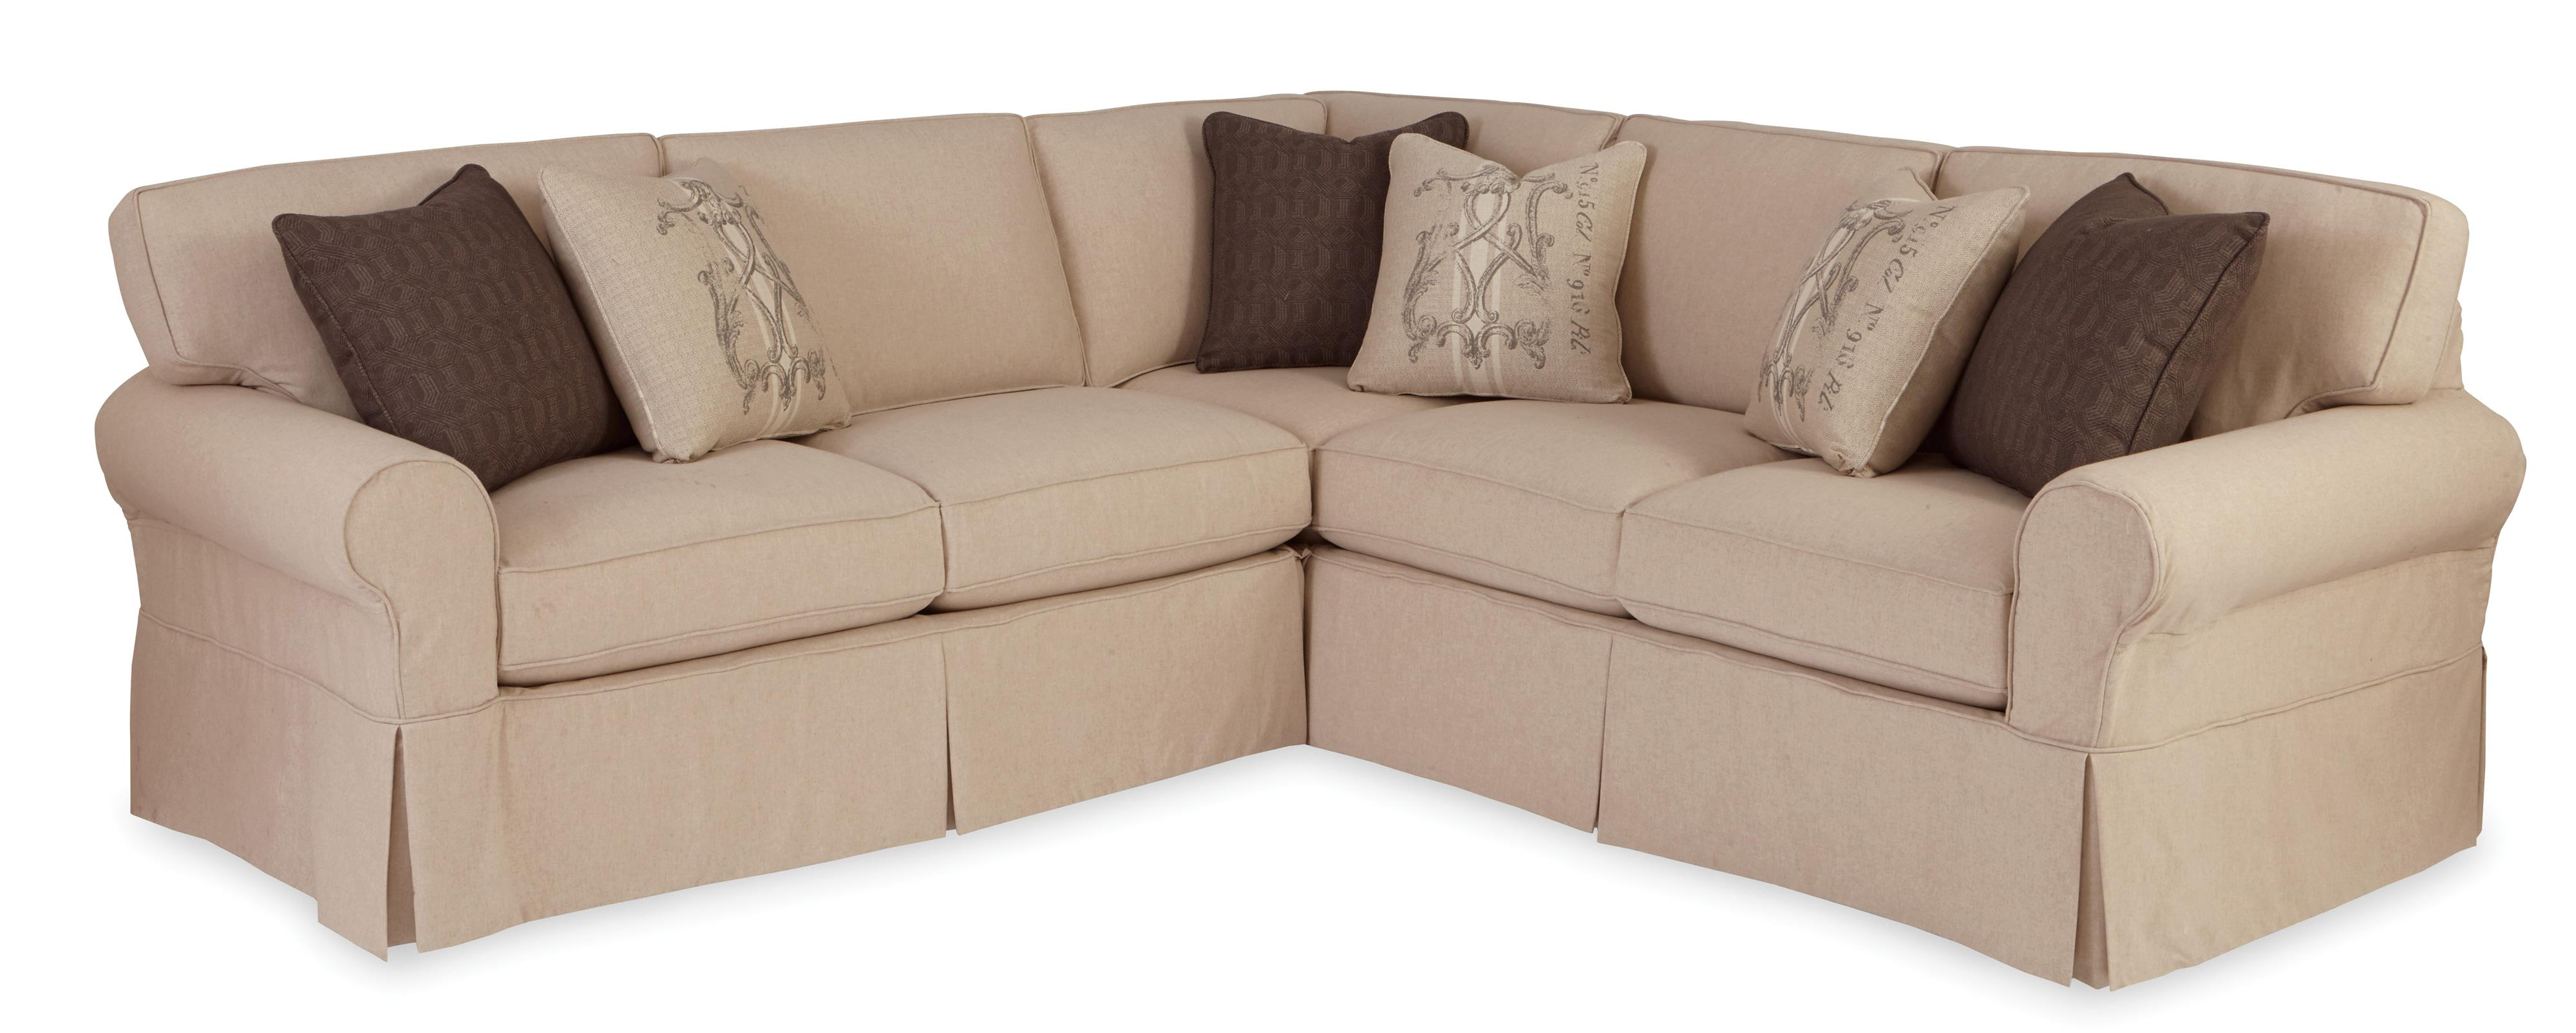 Hudson Sofa with Track Arm and Tufted Back  Hudsons Bay